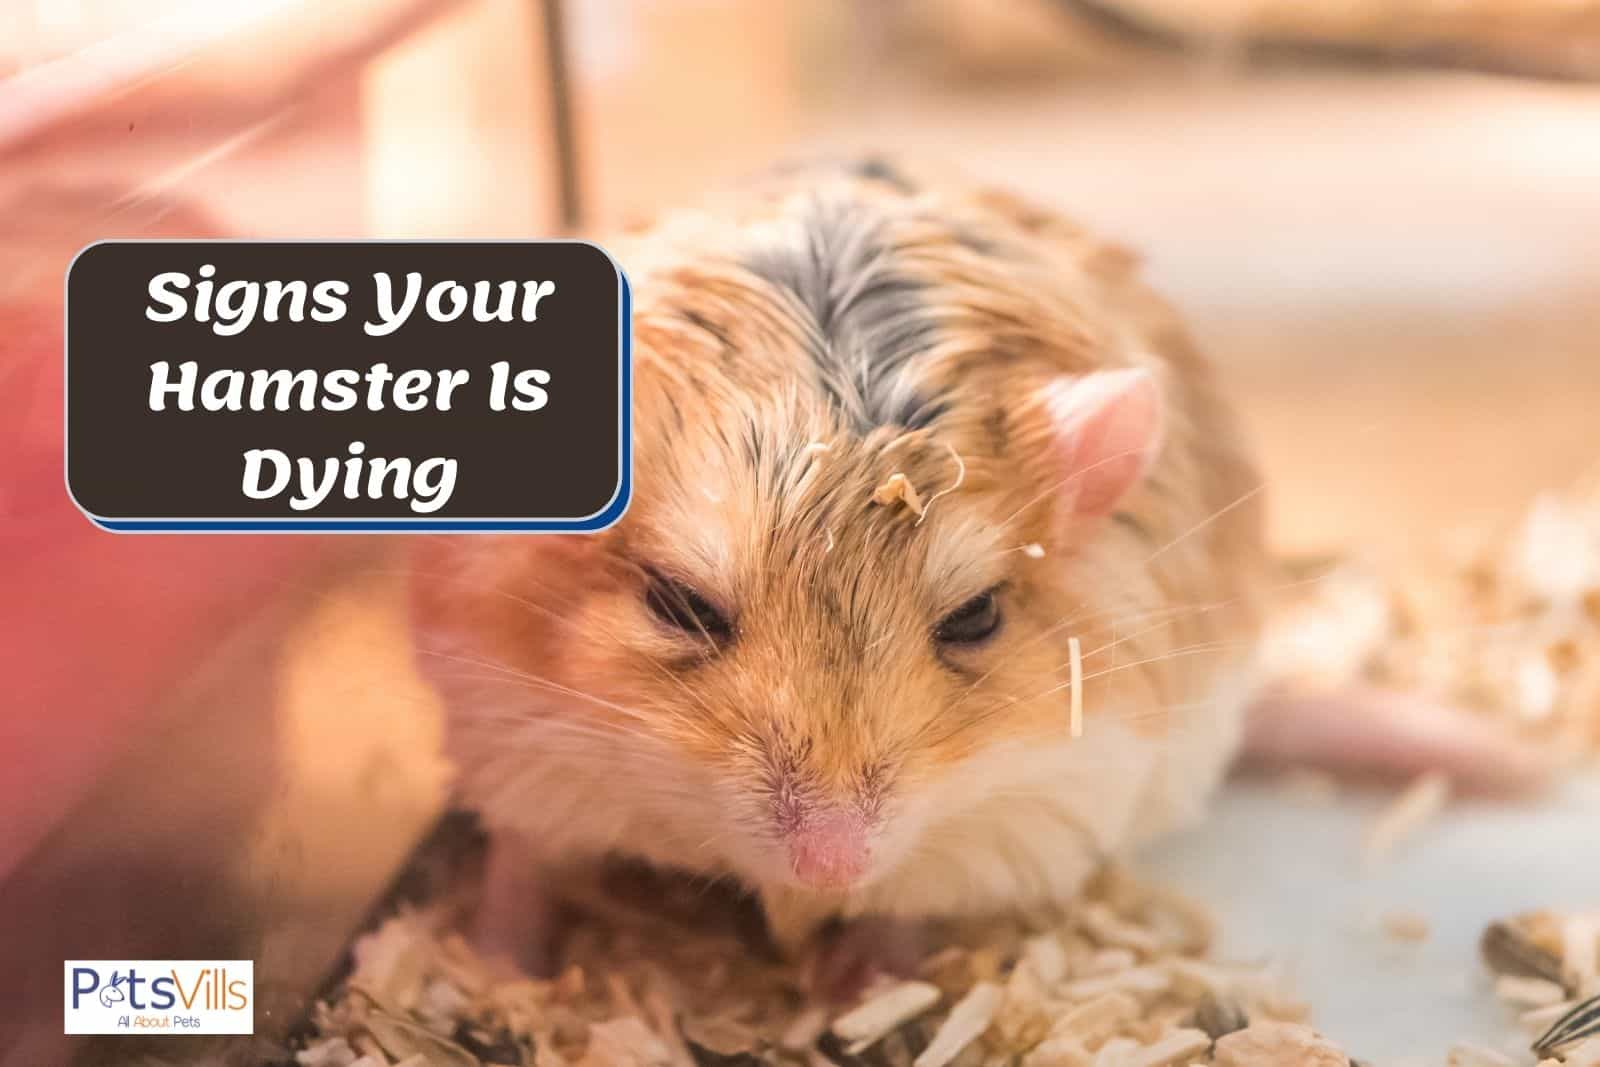 a sick hamster, signs of hamster dying